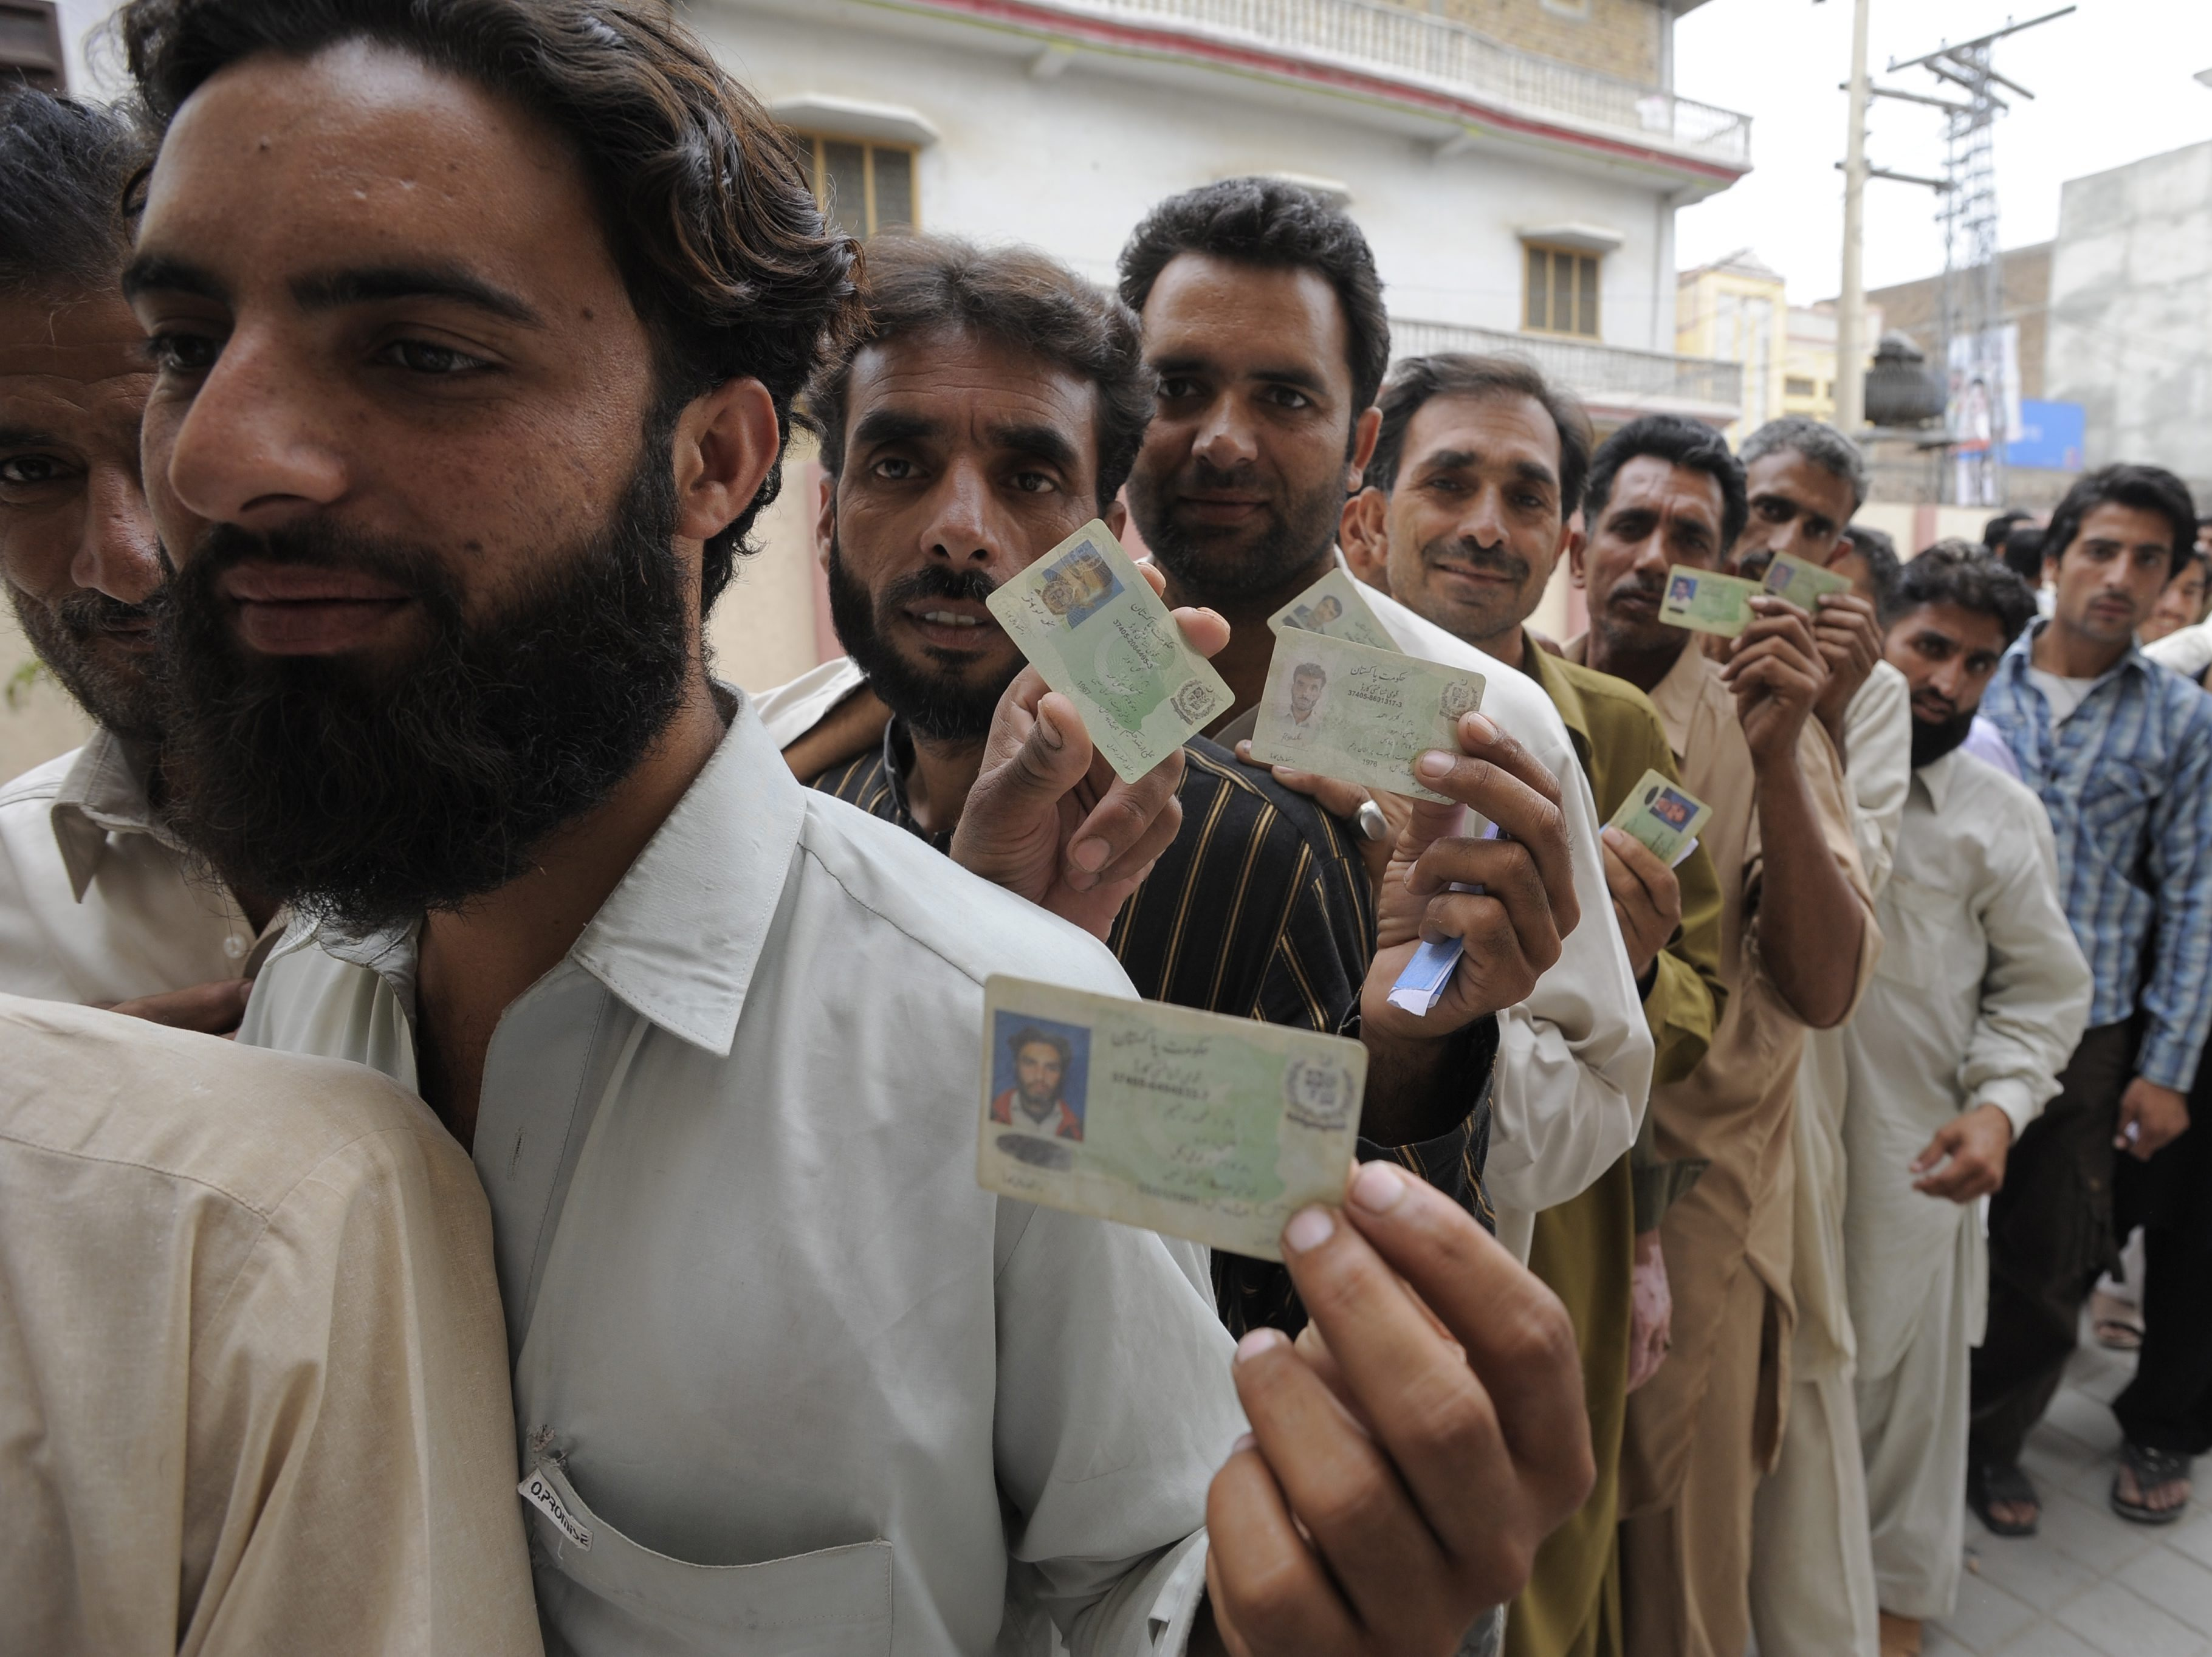 Pakistanis 'Defy Violence' To Vote In Landmark Election